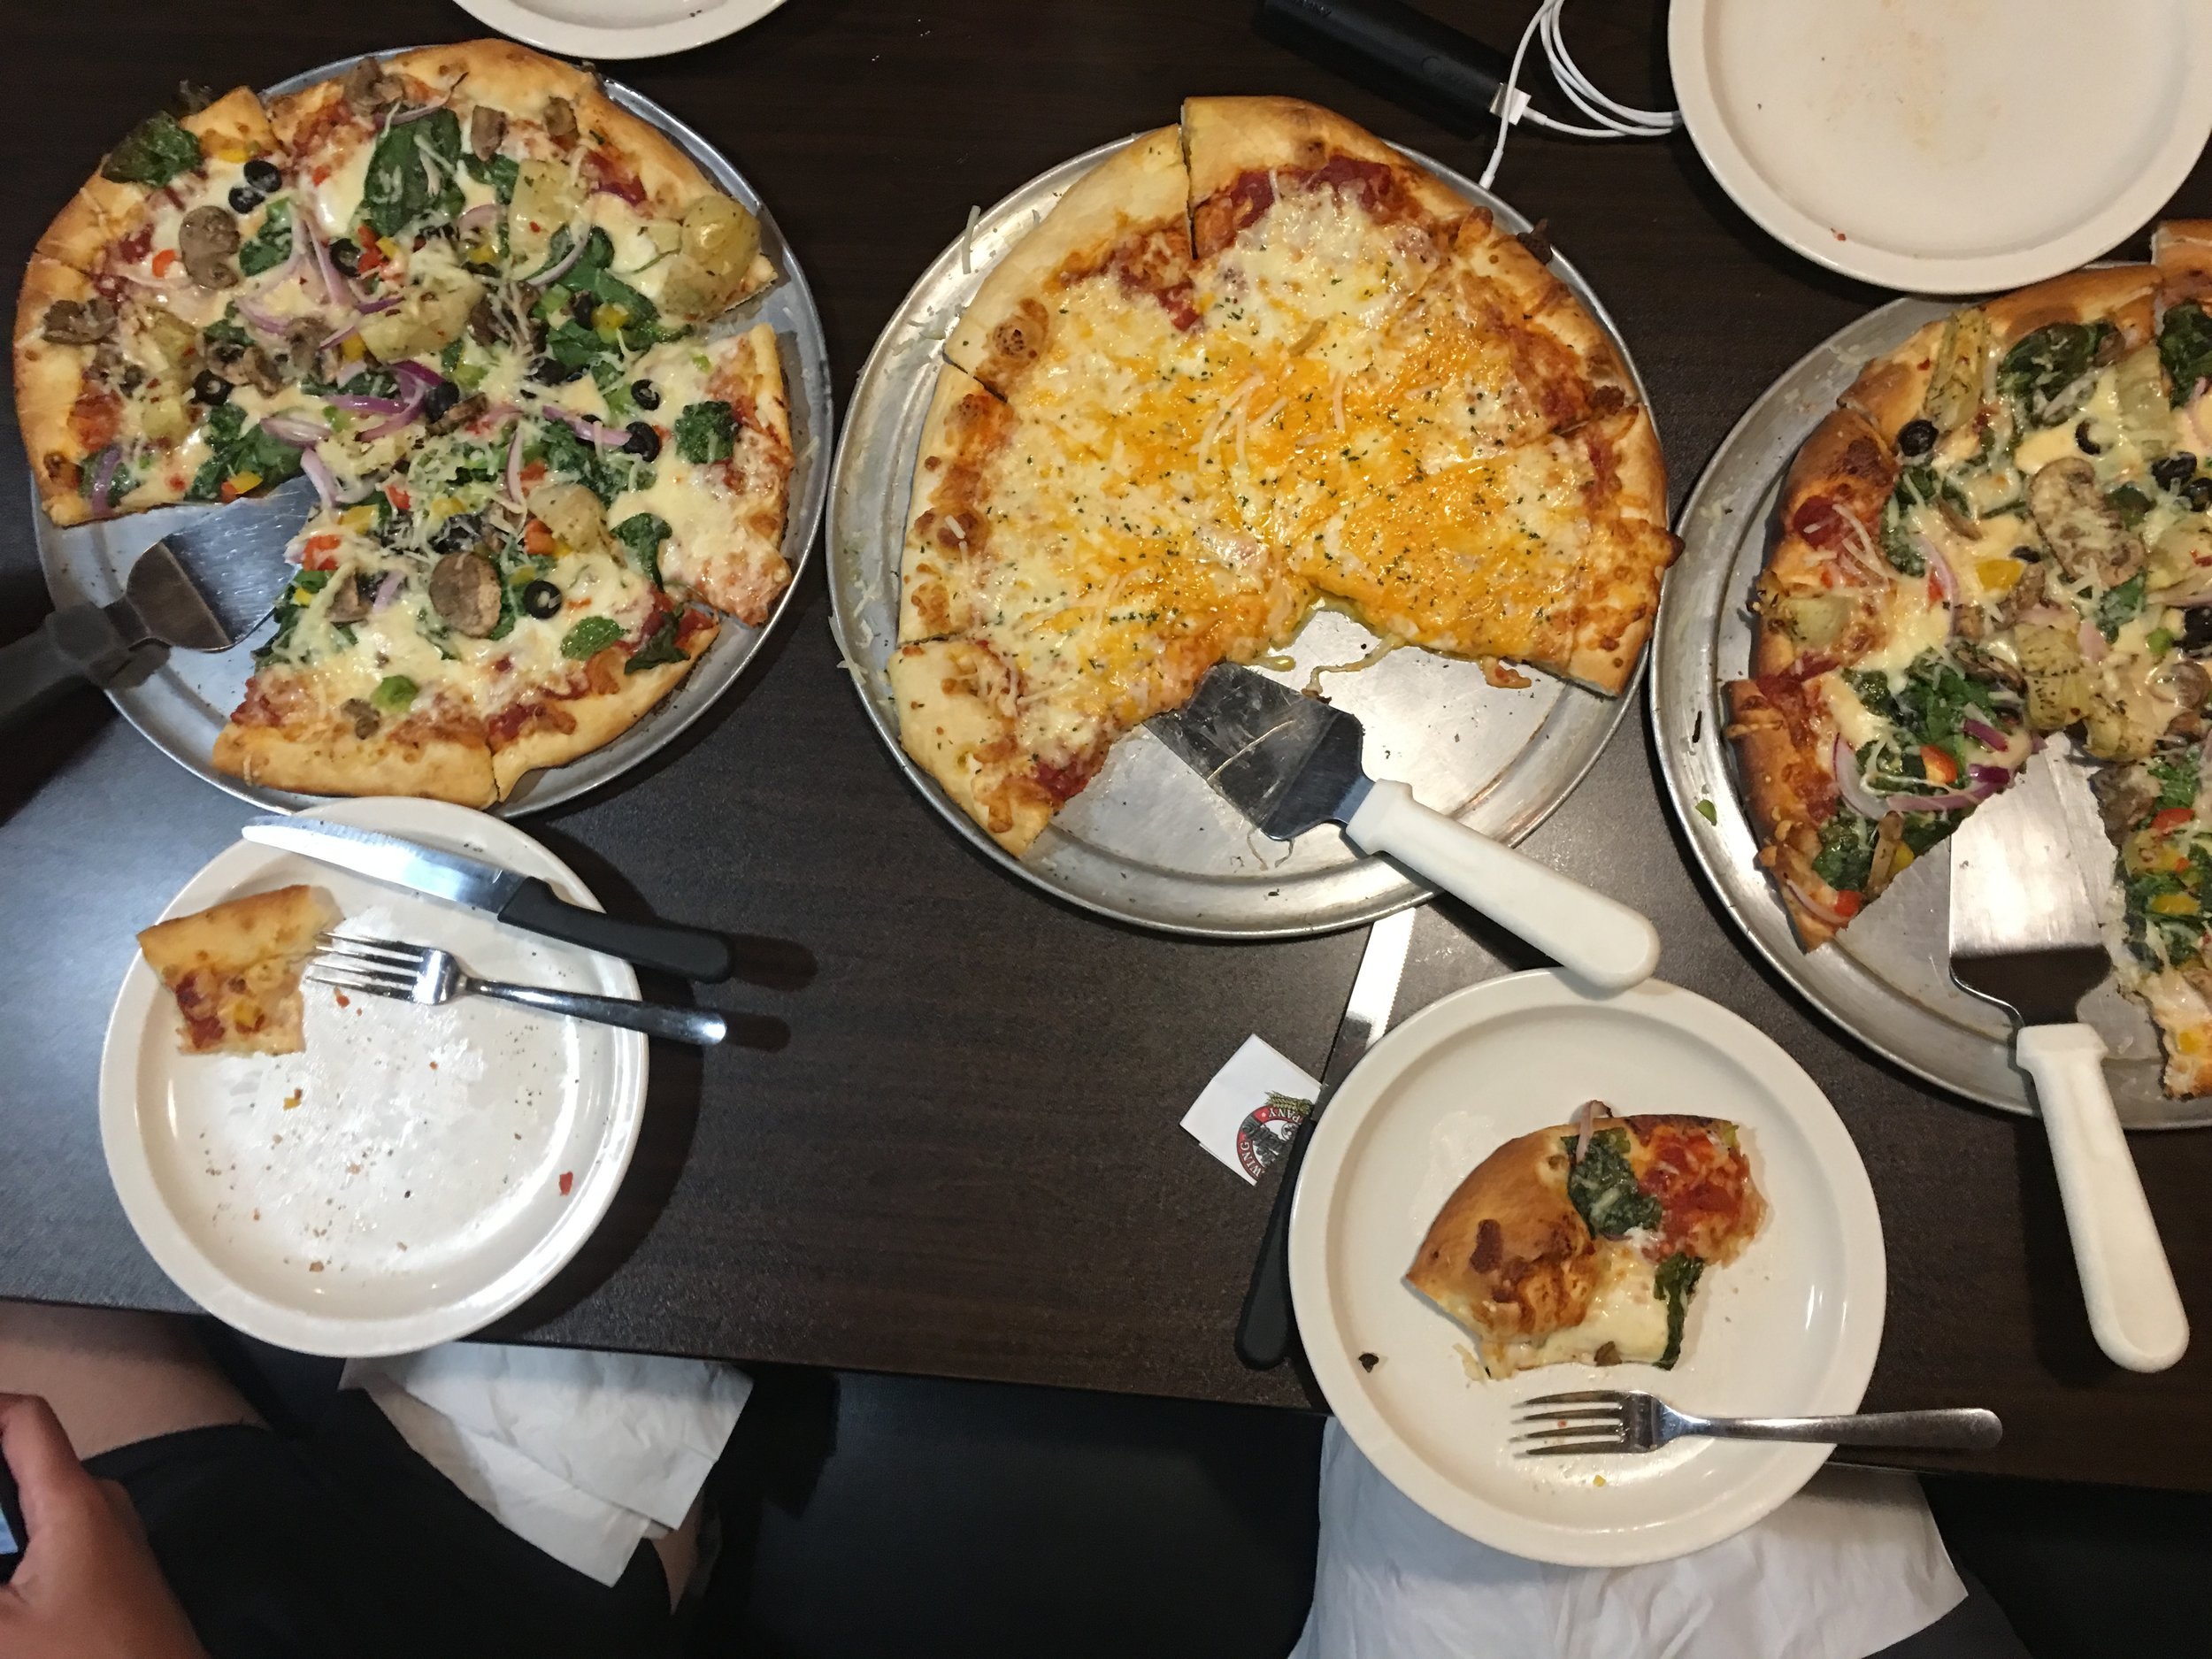 You can never have too much pizza post run.